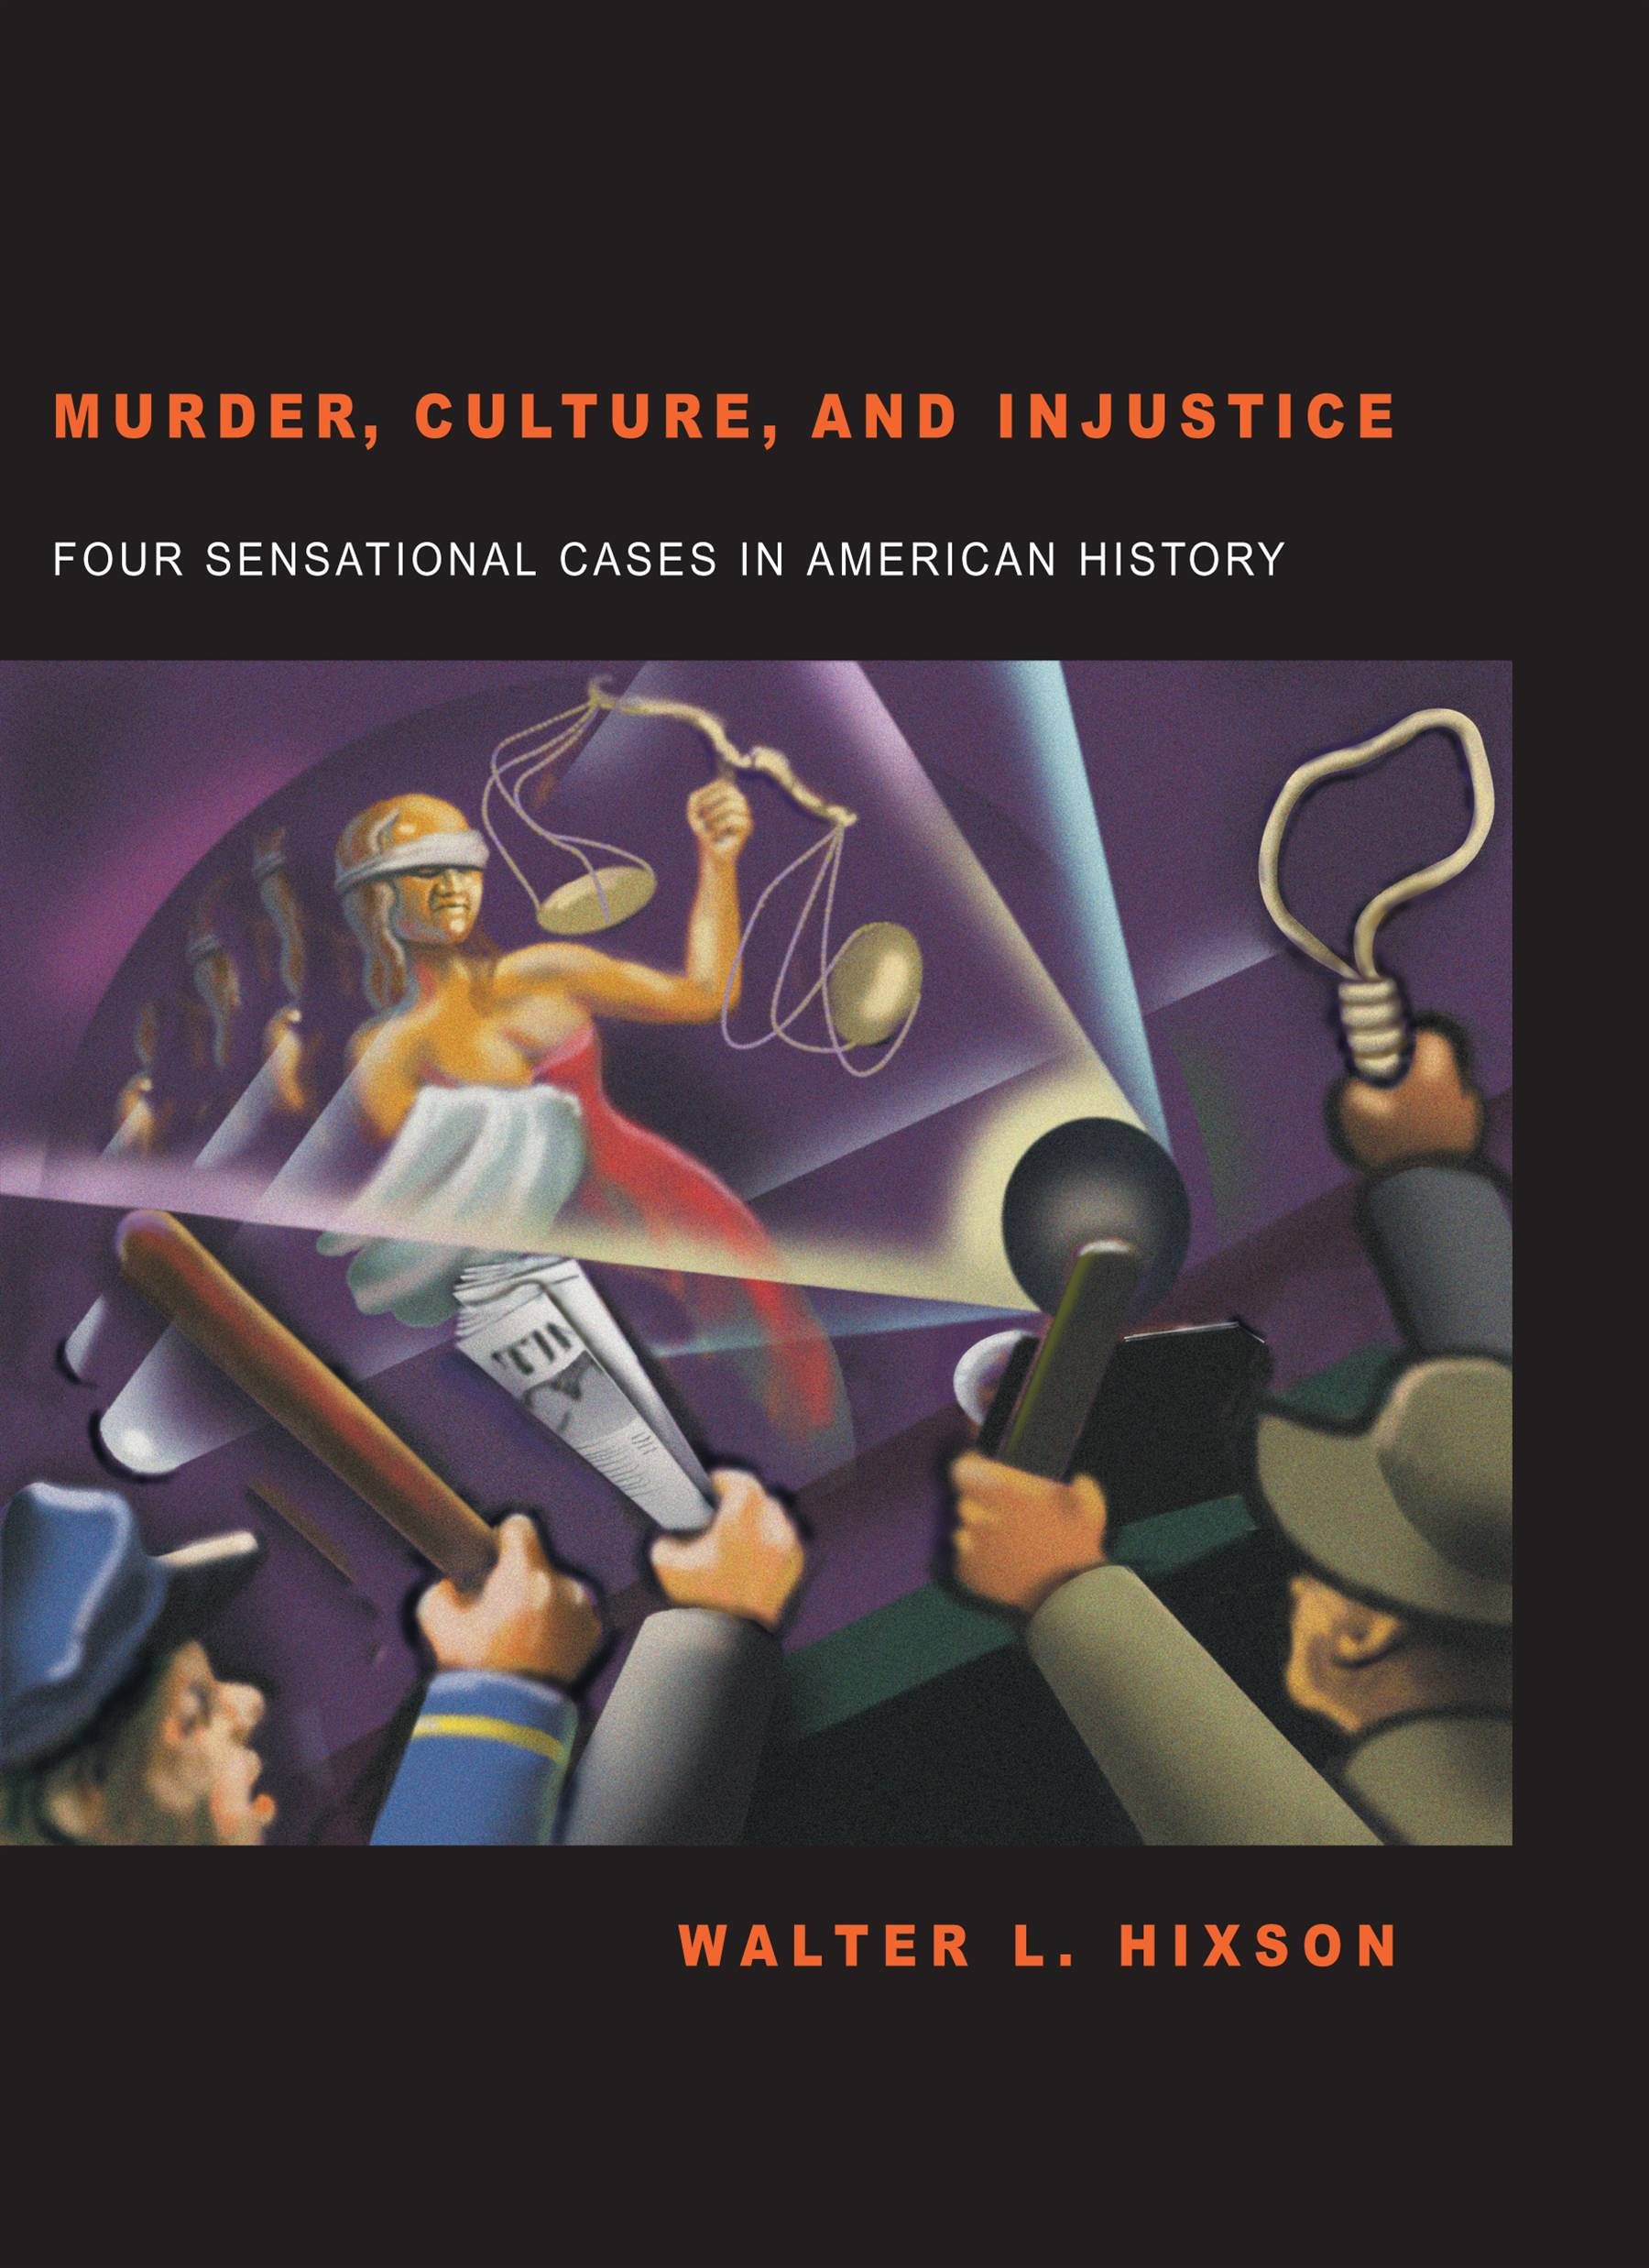 Murder, Culture, and Injustice: Four Sensational Cases in American History